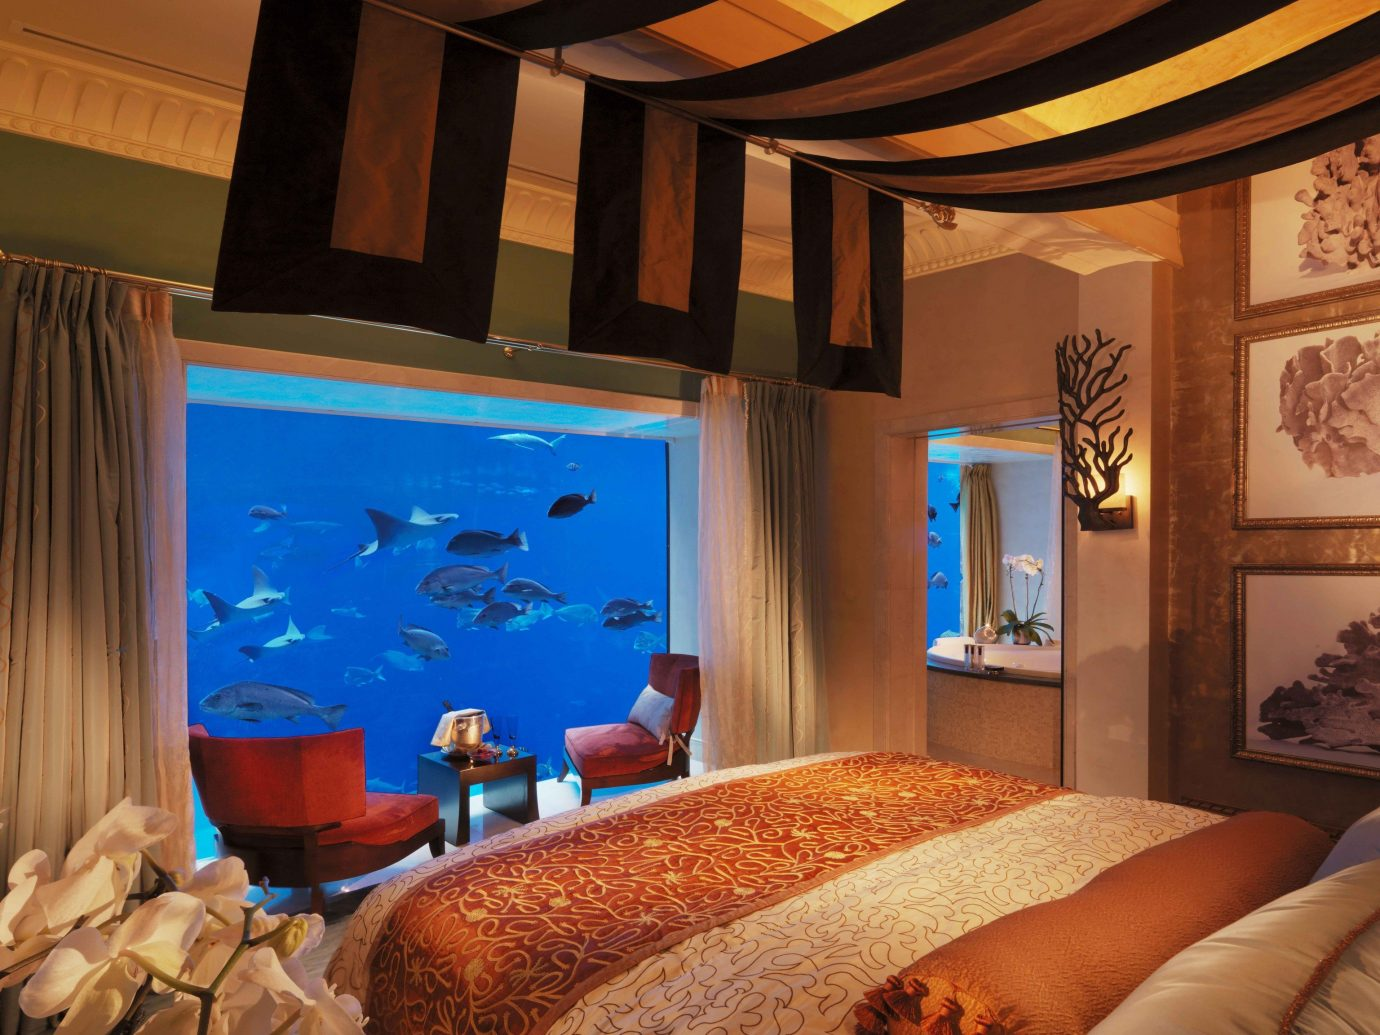 Scuba Diving + Snorkeling Trip Ideas indoor room property estate Suite living room interior design Resort Bedroom home cottage